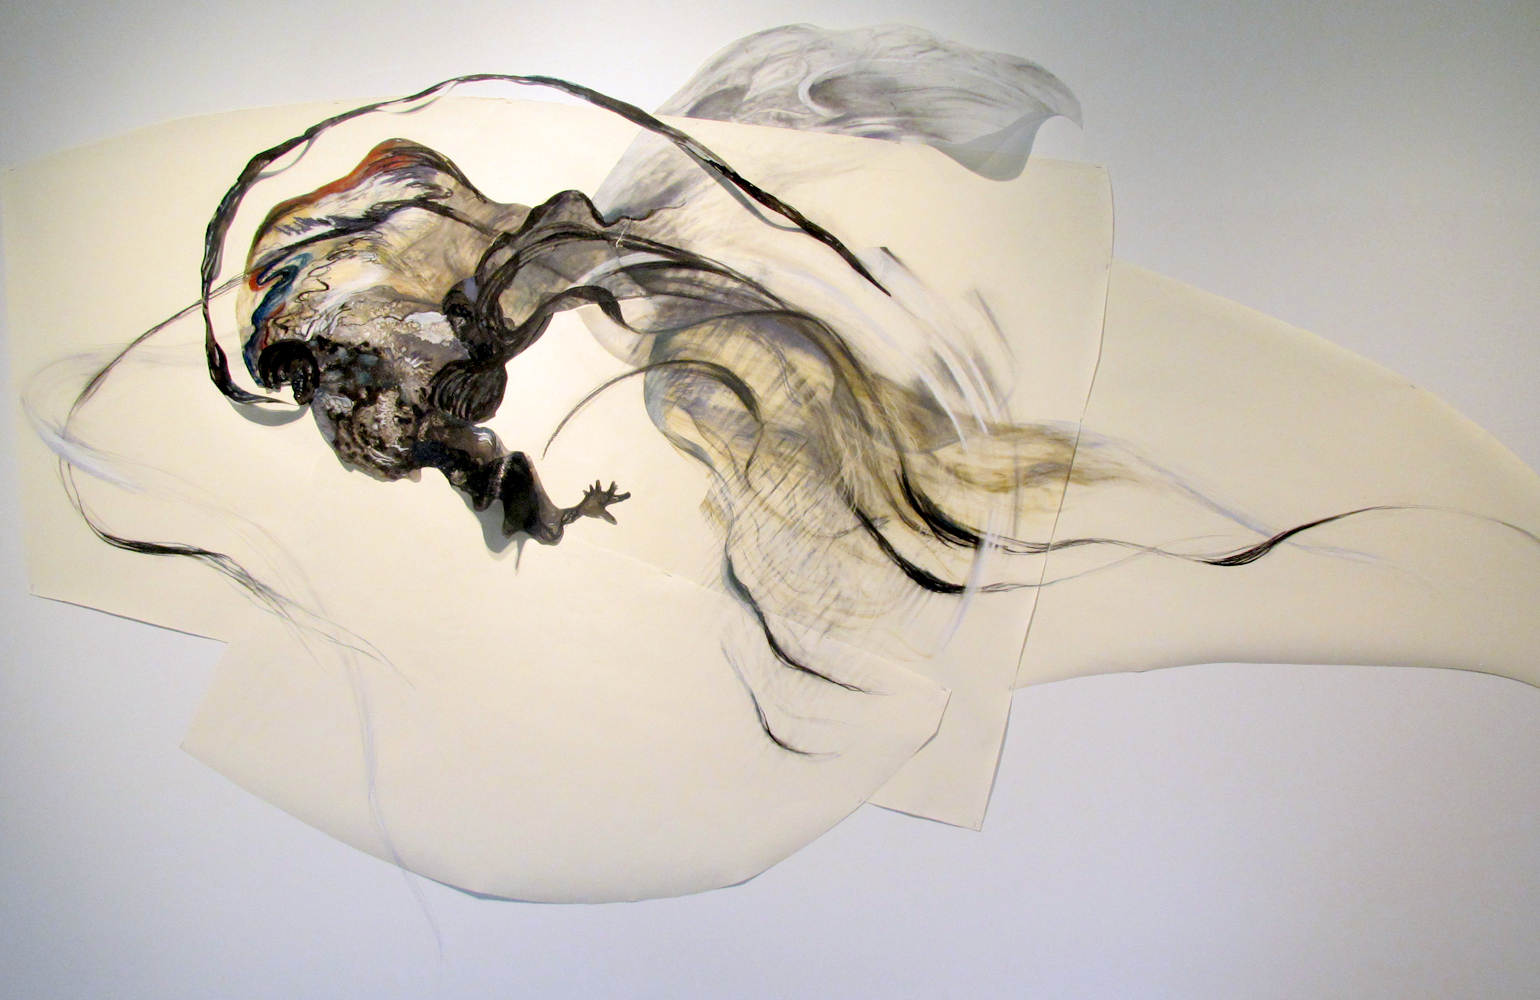 Catclysm , 2012, Graphite, pastel, oil bar on paper and mylar, 80 x 150 inches